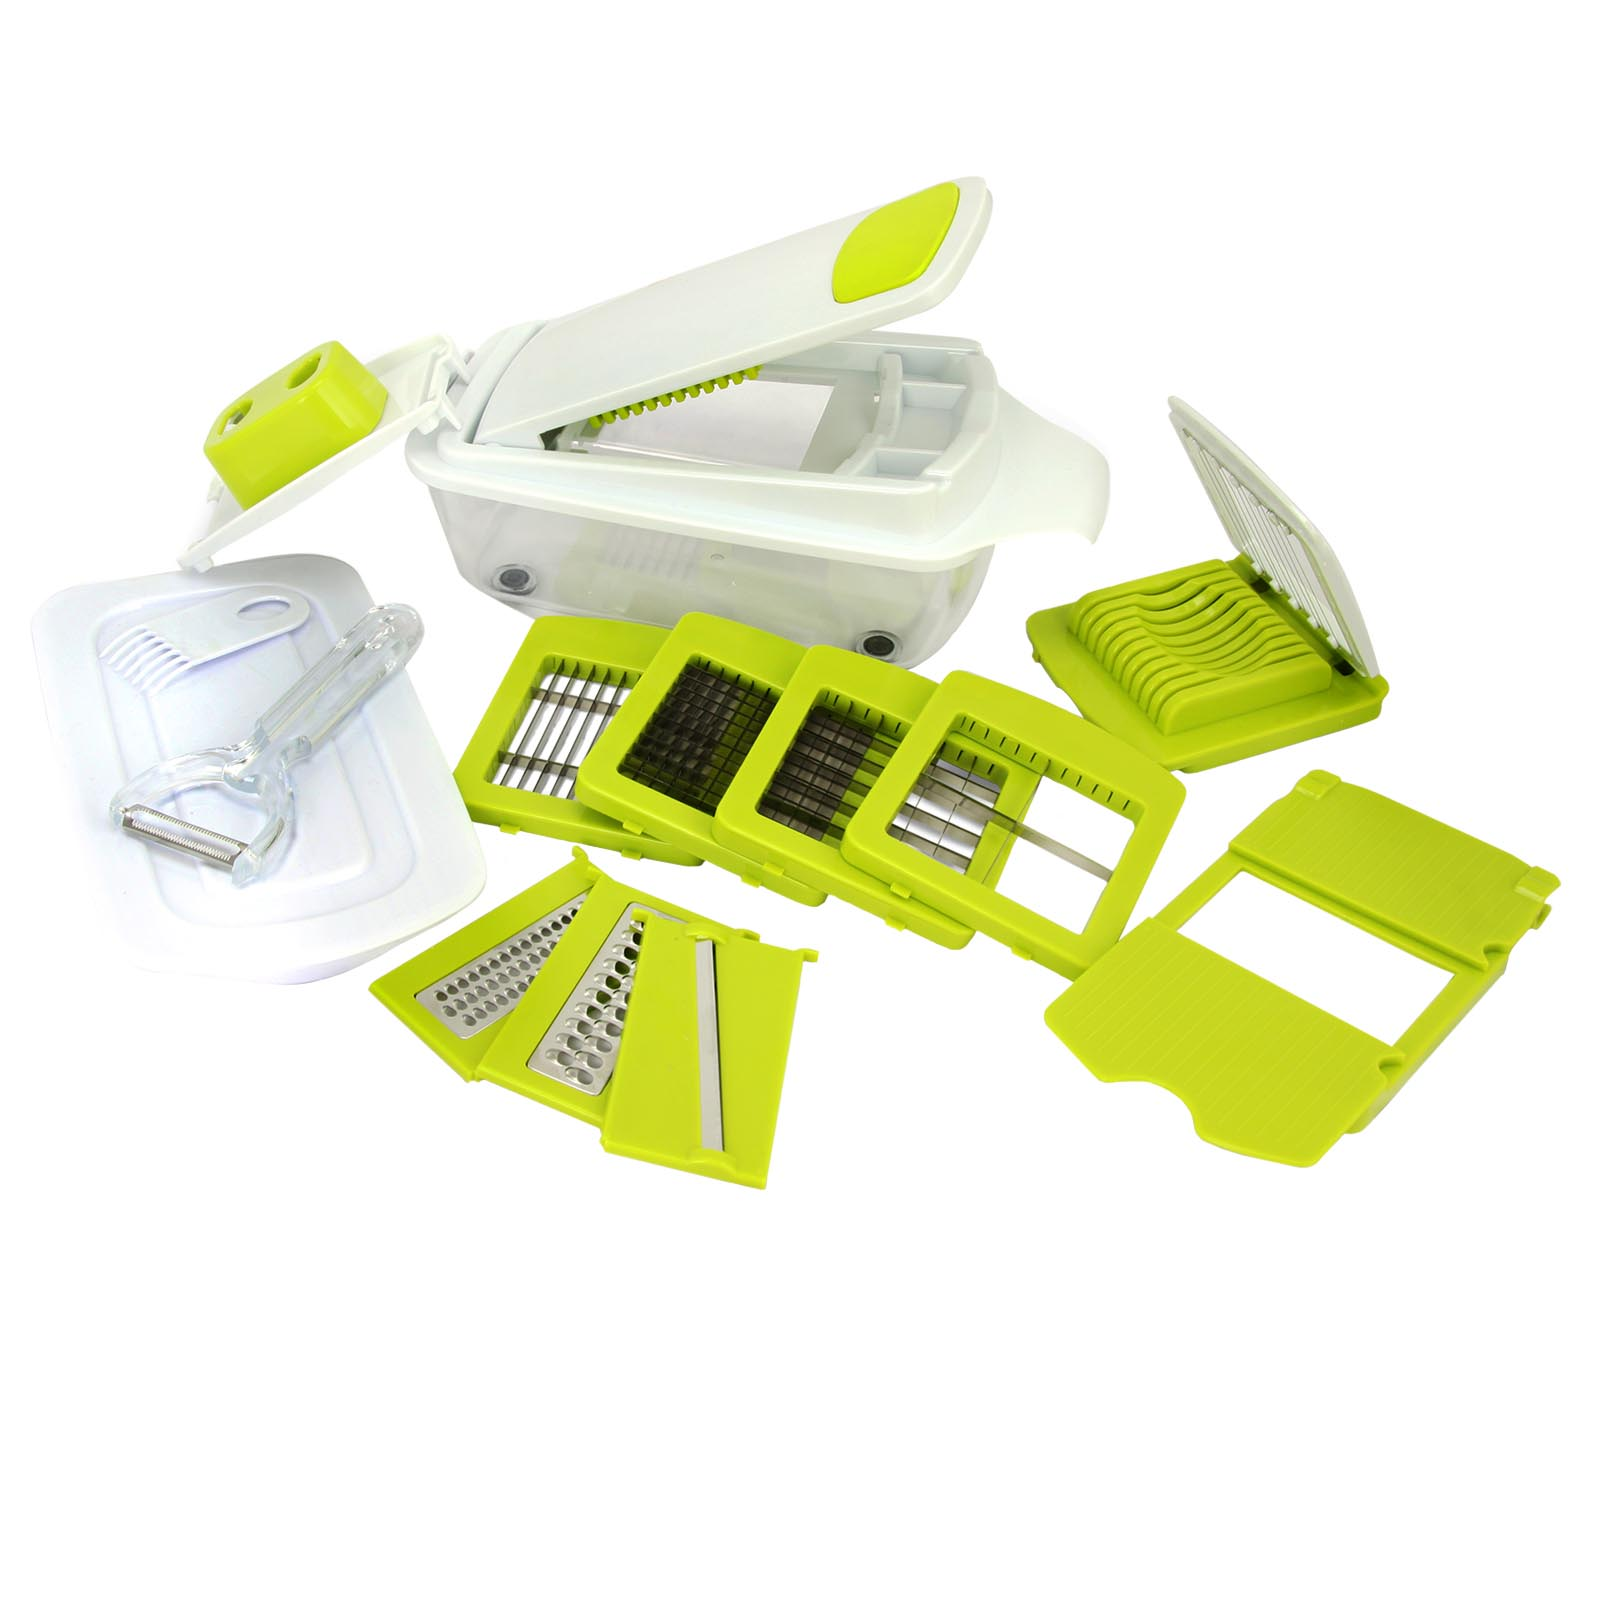 Image of MegaChef 970103072M 8-in-1 Multi-Use Slicer Dicer and Chopper with Interchangeable Blades, Vegetable and Fruit Peeler and Soft Slicer, Green